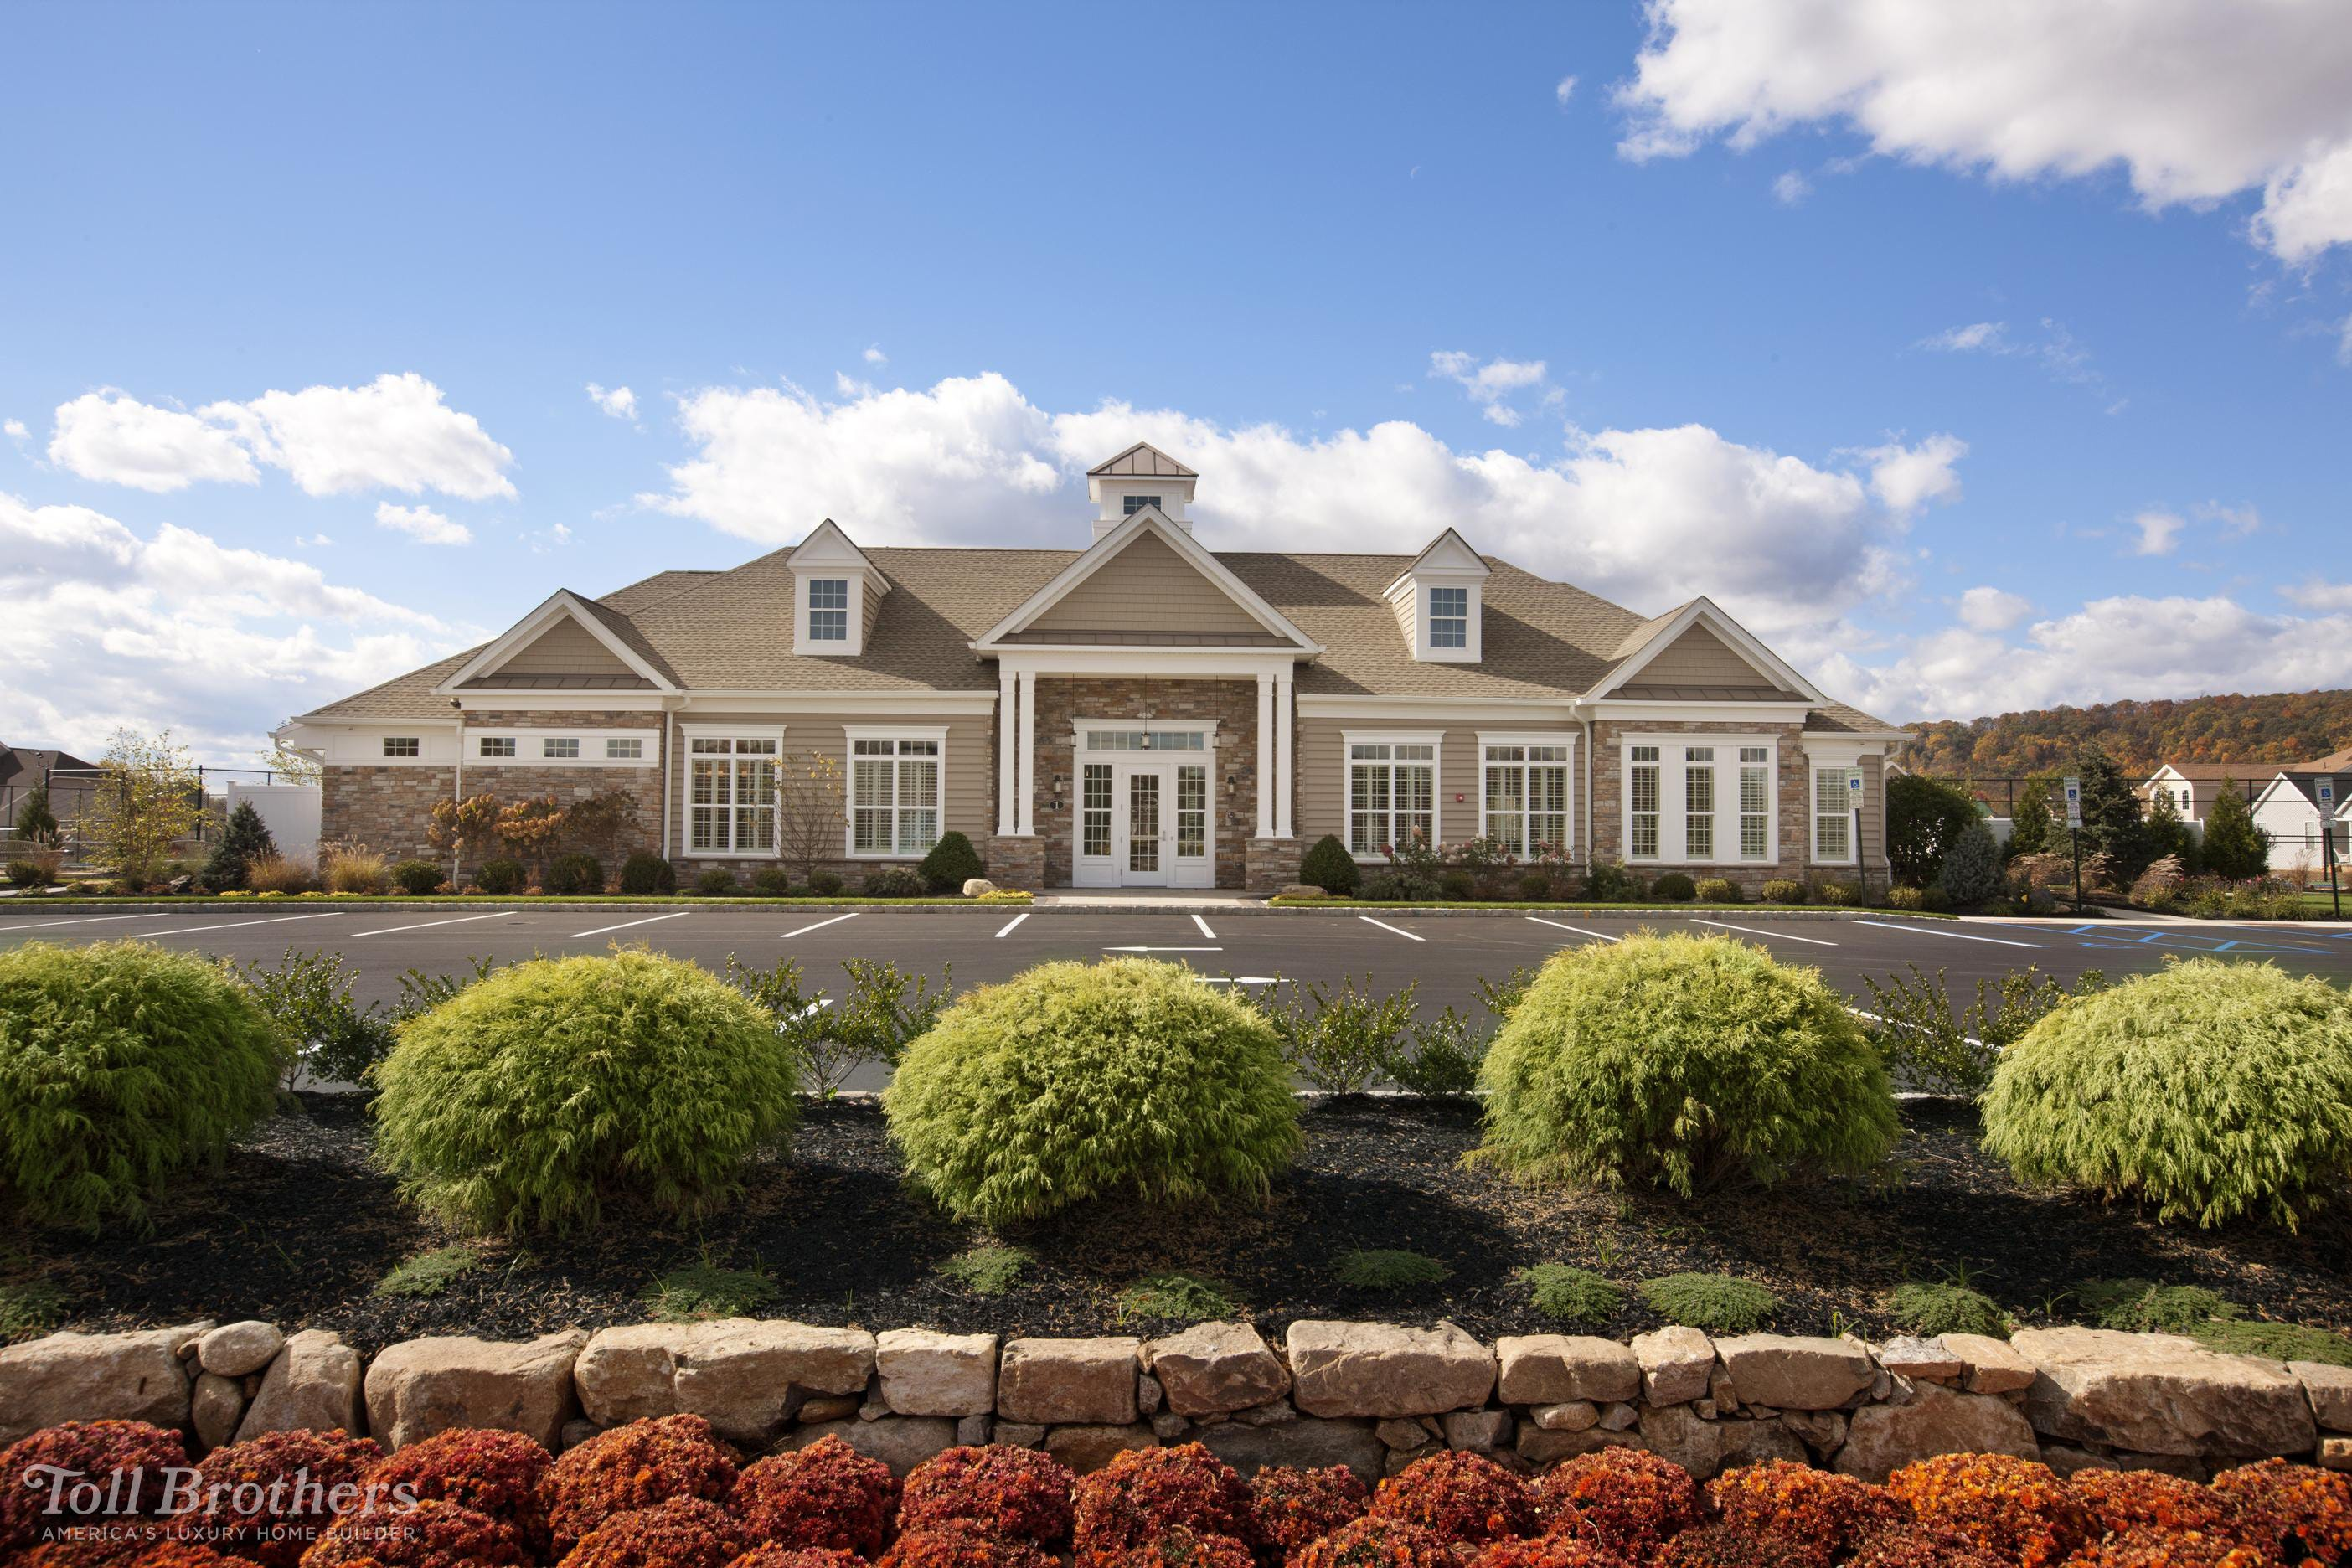 Toll brother adult community